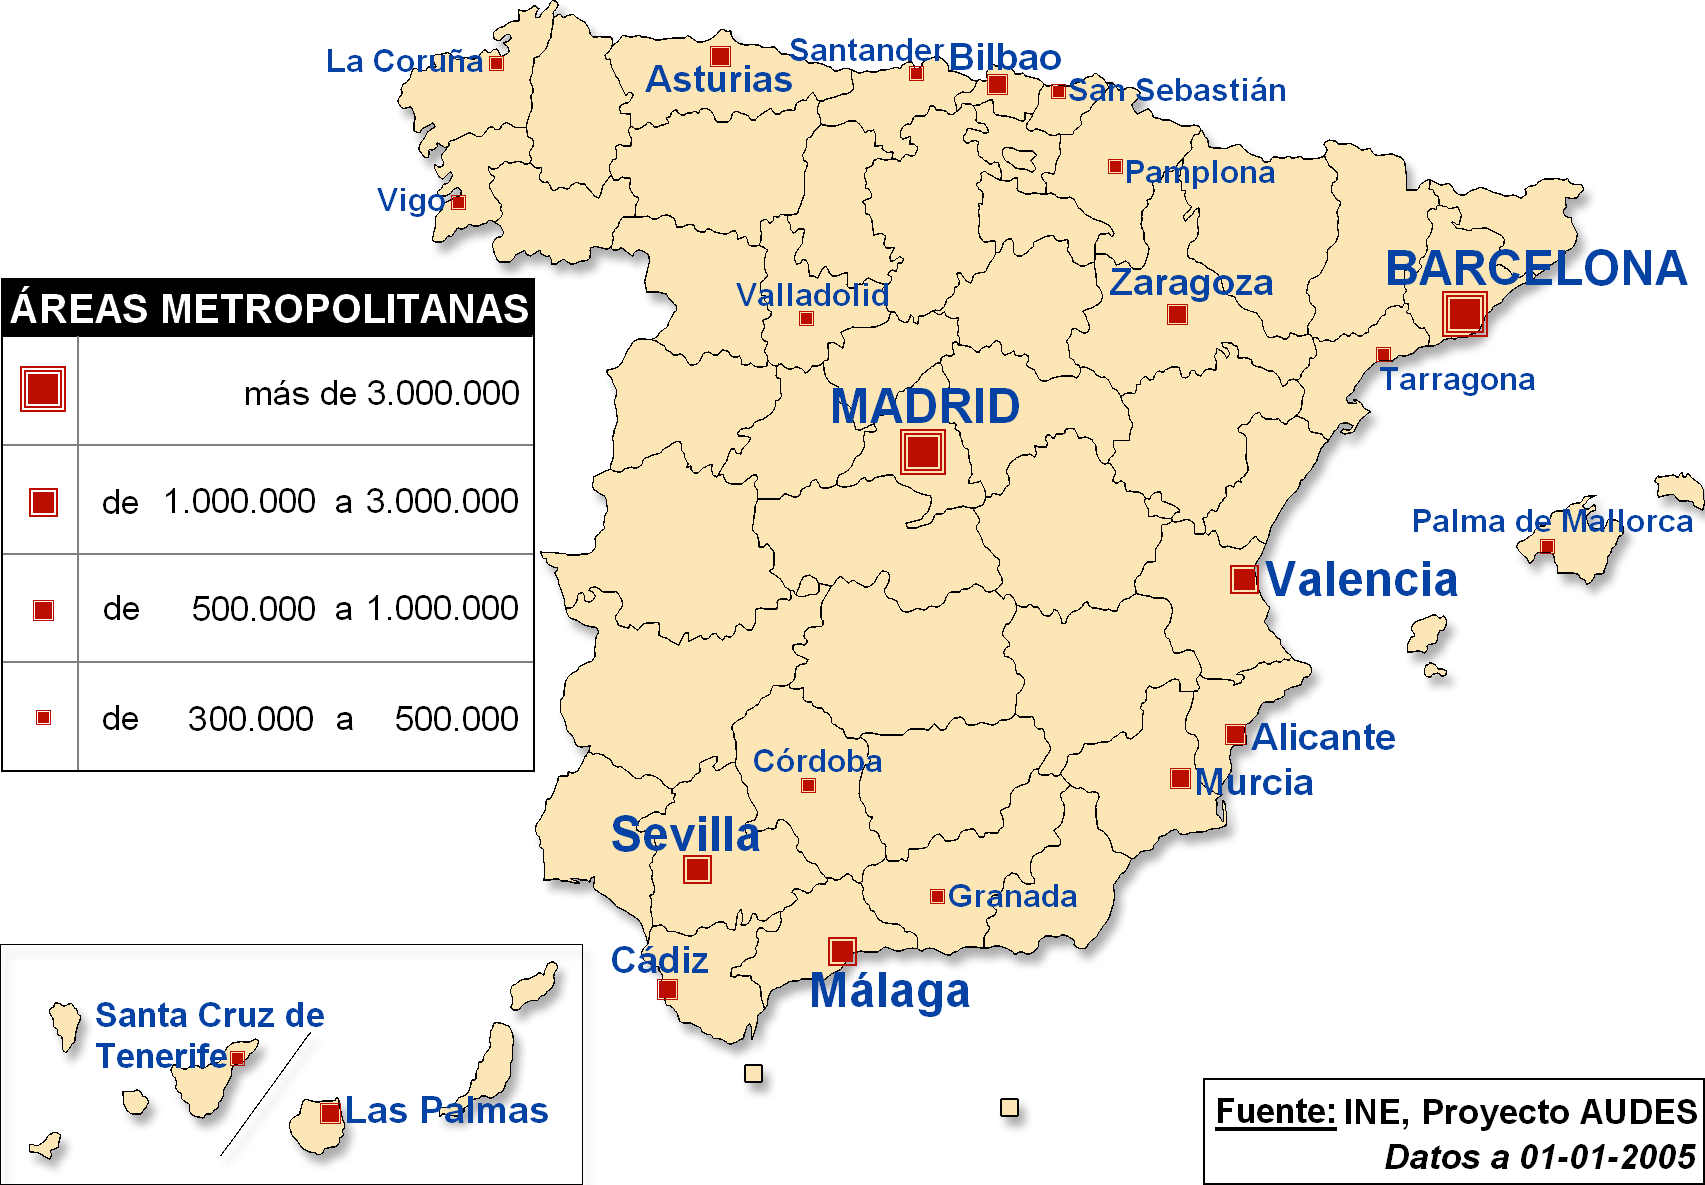 Spain major metropolitan areas 2005